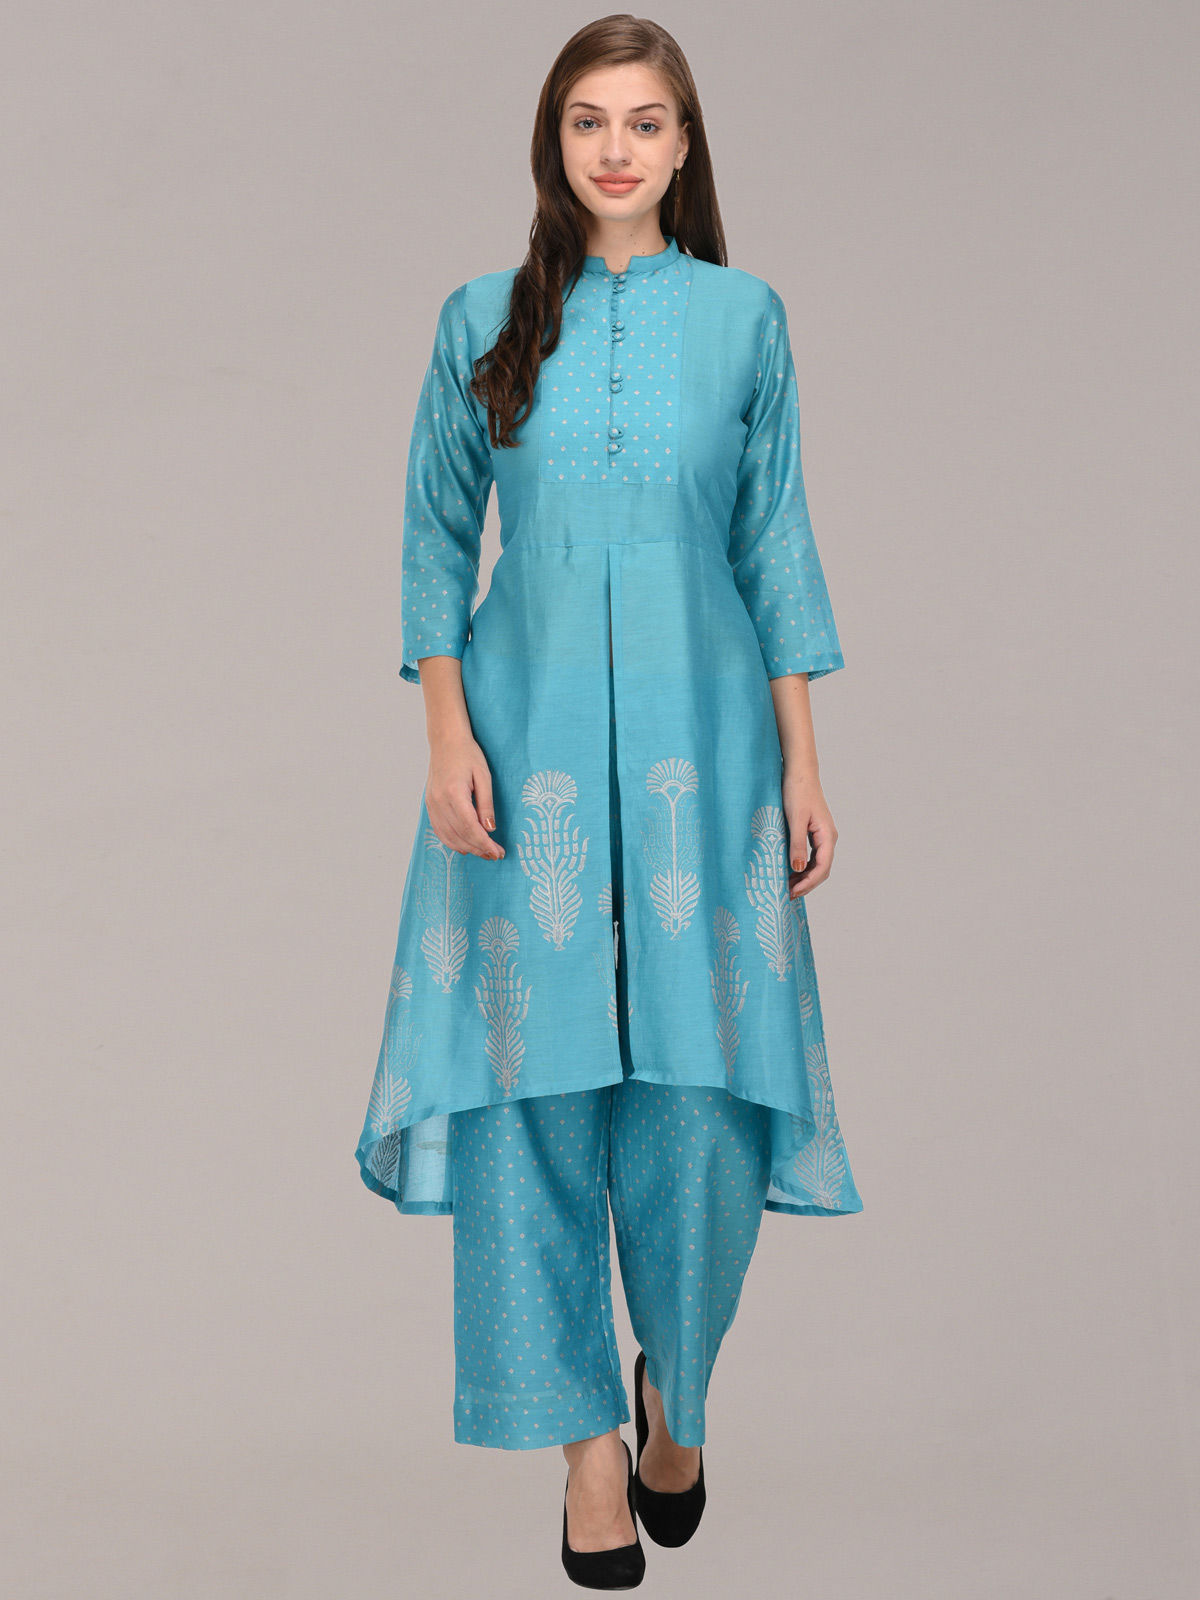 Silver Khari sky blue button detailing chanderi tunic with bottom